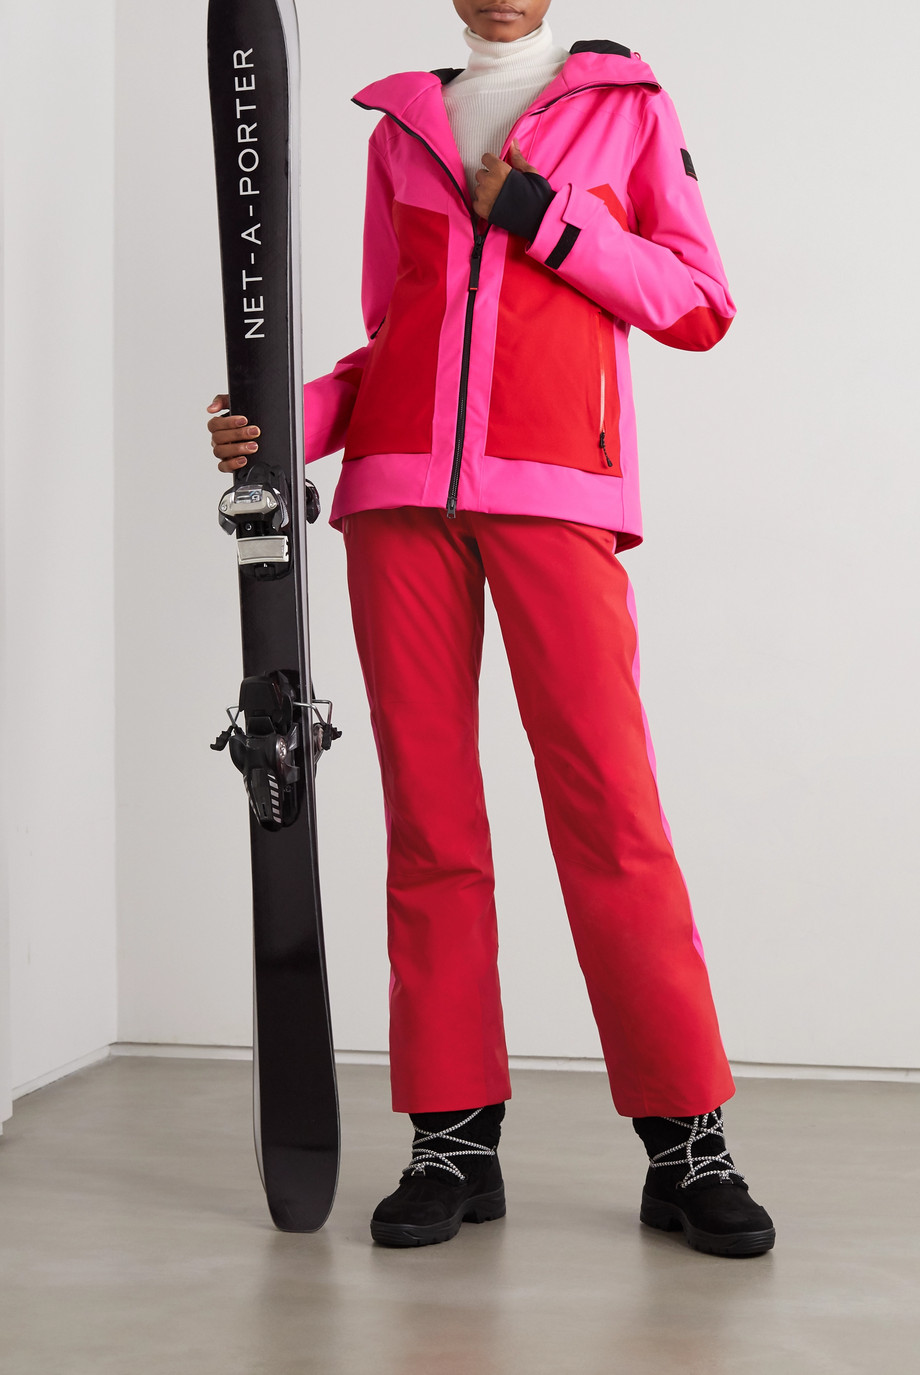 BOGNER FIRE+ICE Pika Skijacke in Colour-Block-Optik mit Kapuze